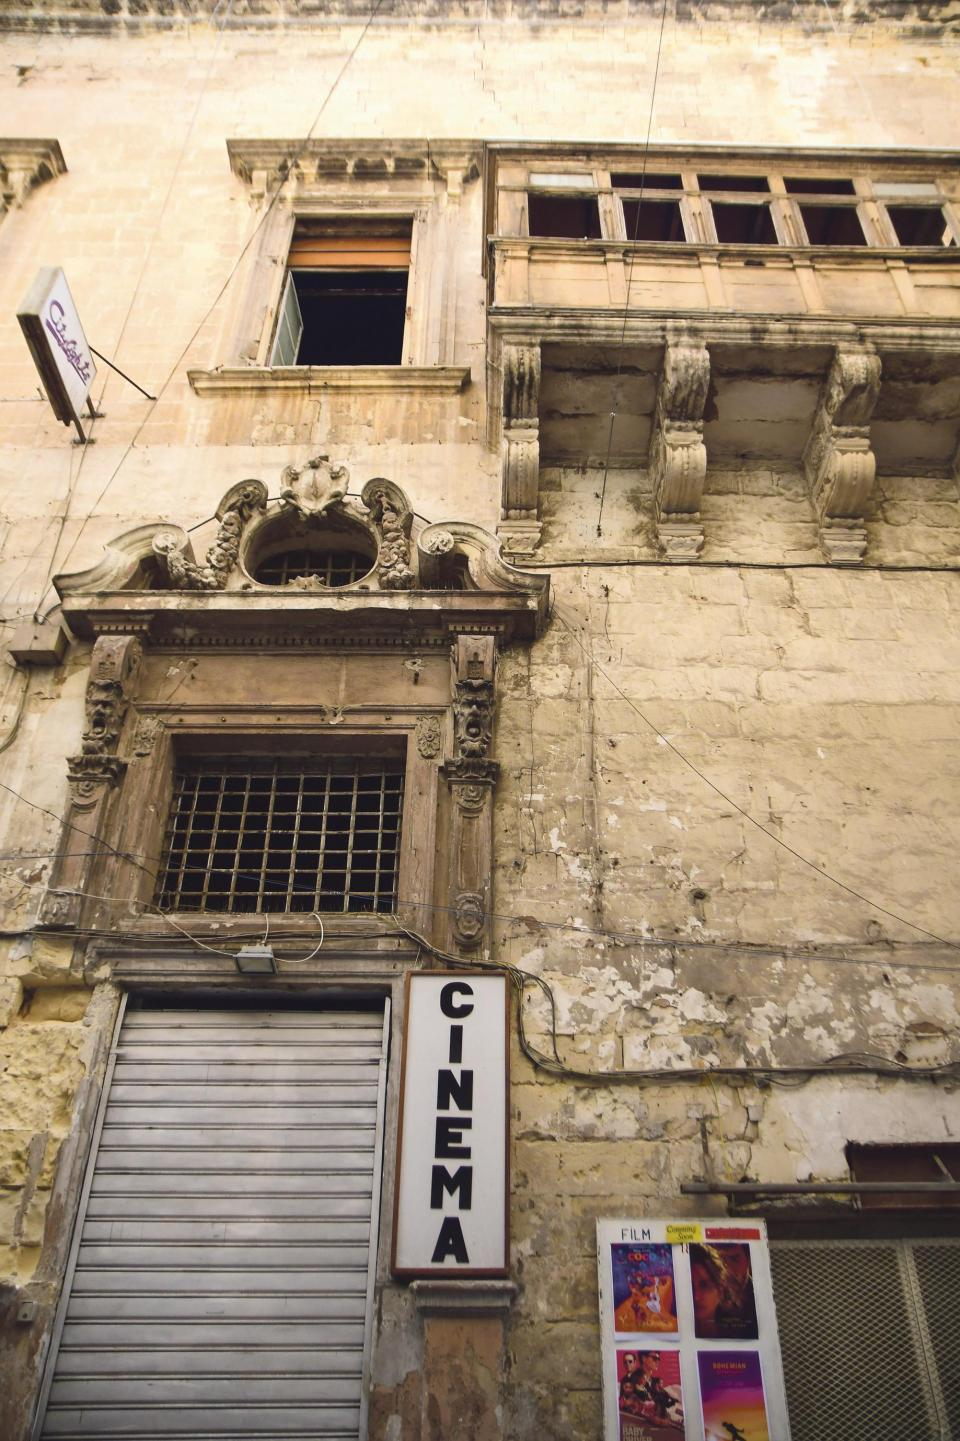 The 300-year-old Valletta building is scheduled as a Grade 1 national monument.